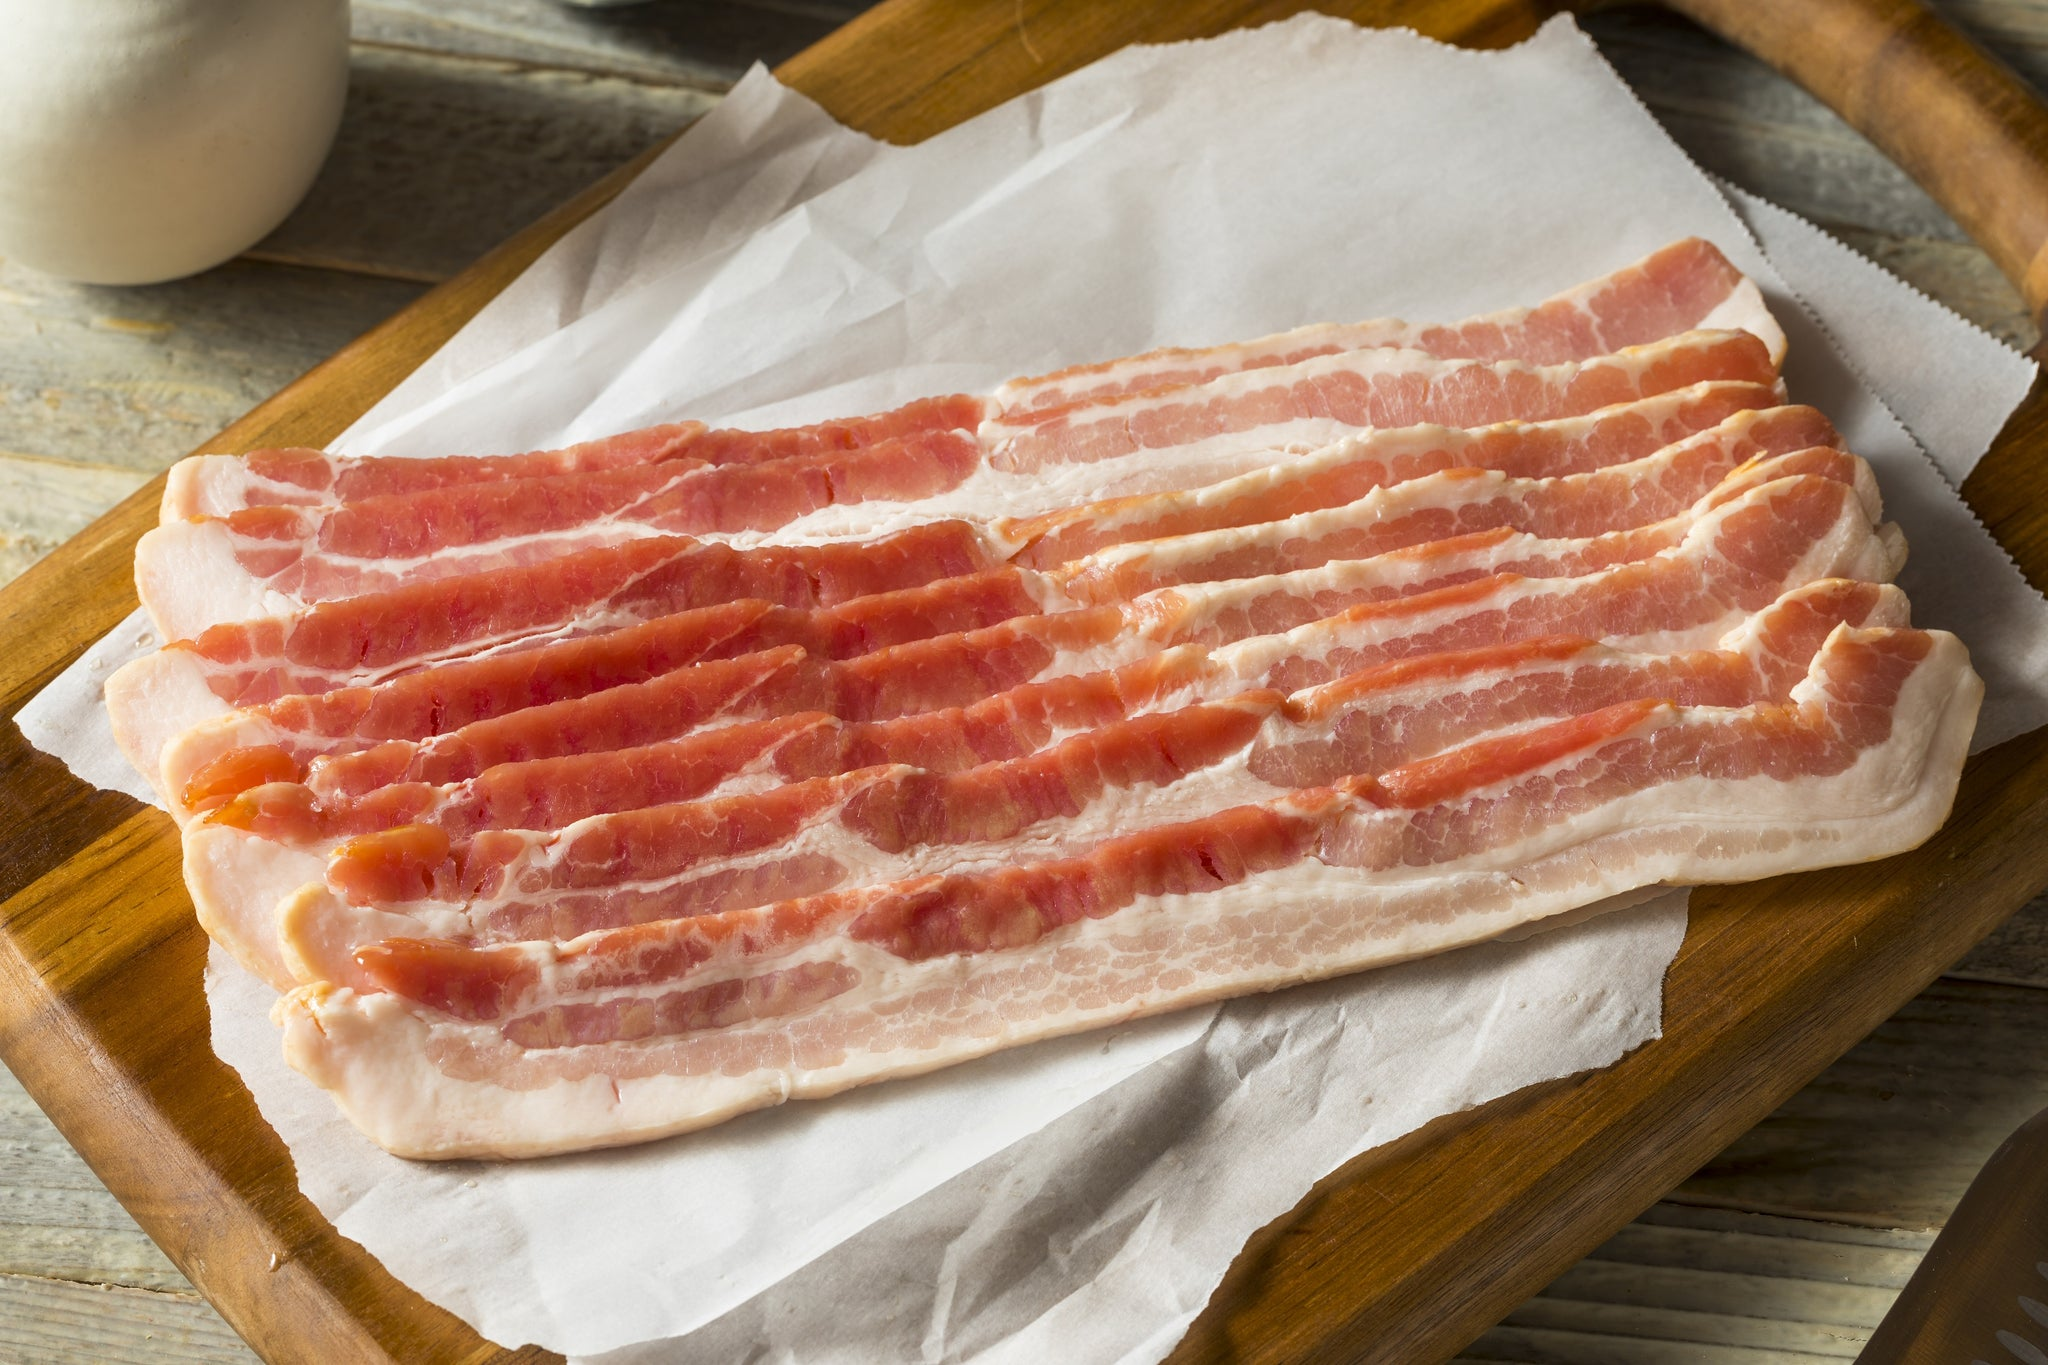 Bacon Streaky Plain Dry Cured (450 - 500g)